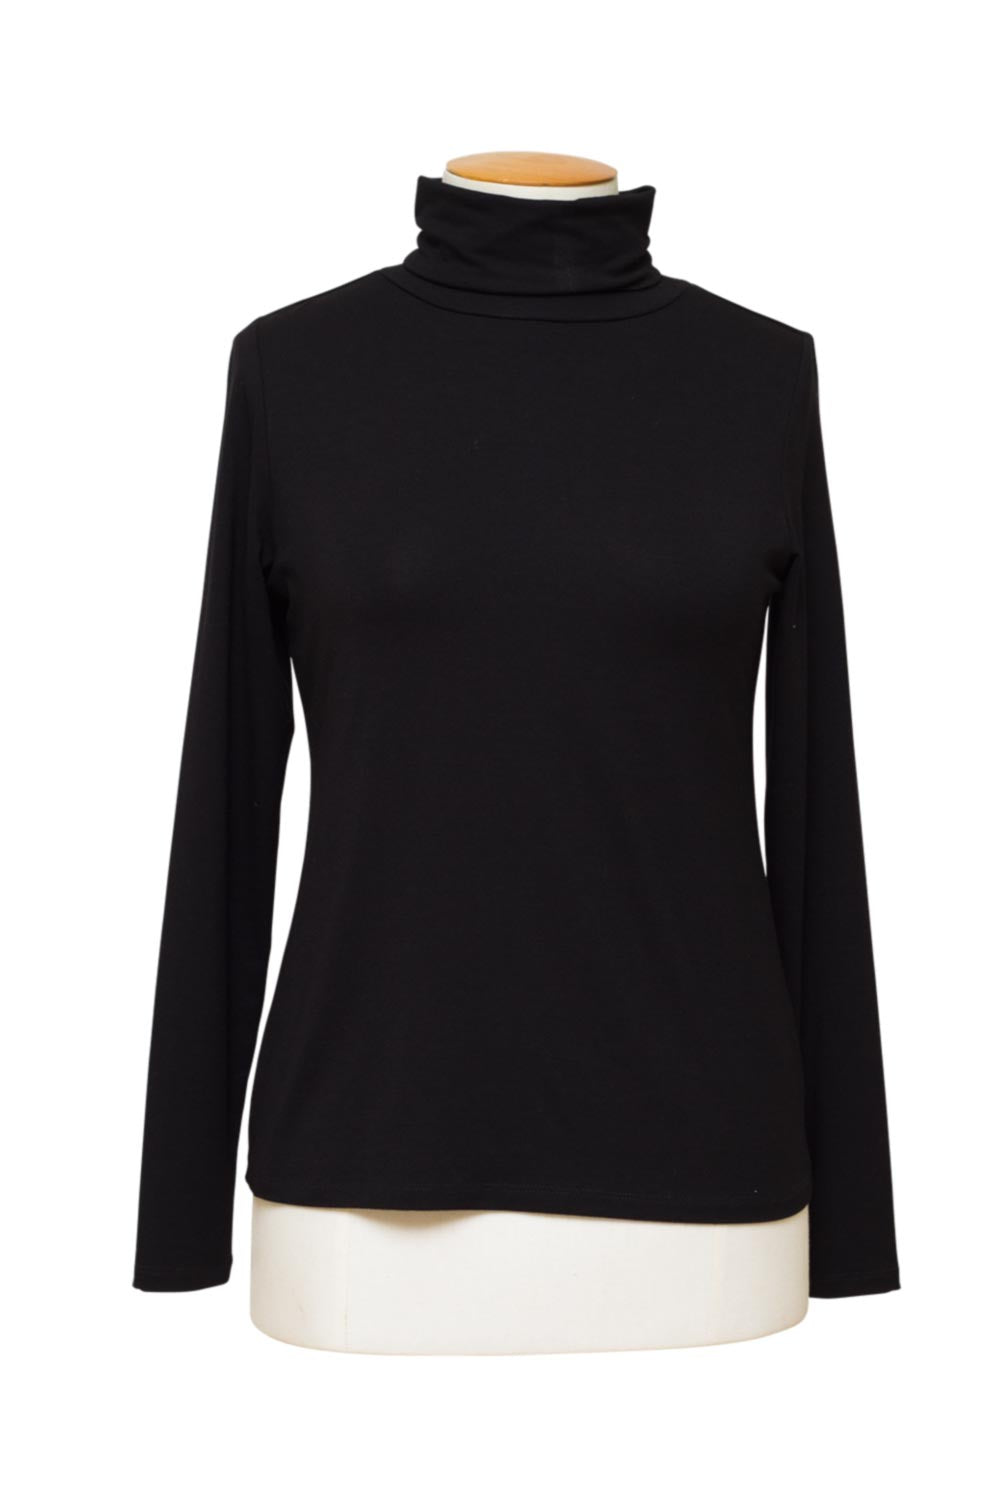 relaxed-by-paula-ryan-long-sleeved-polo-top